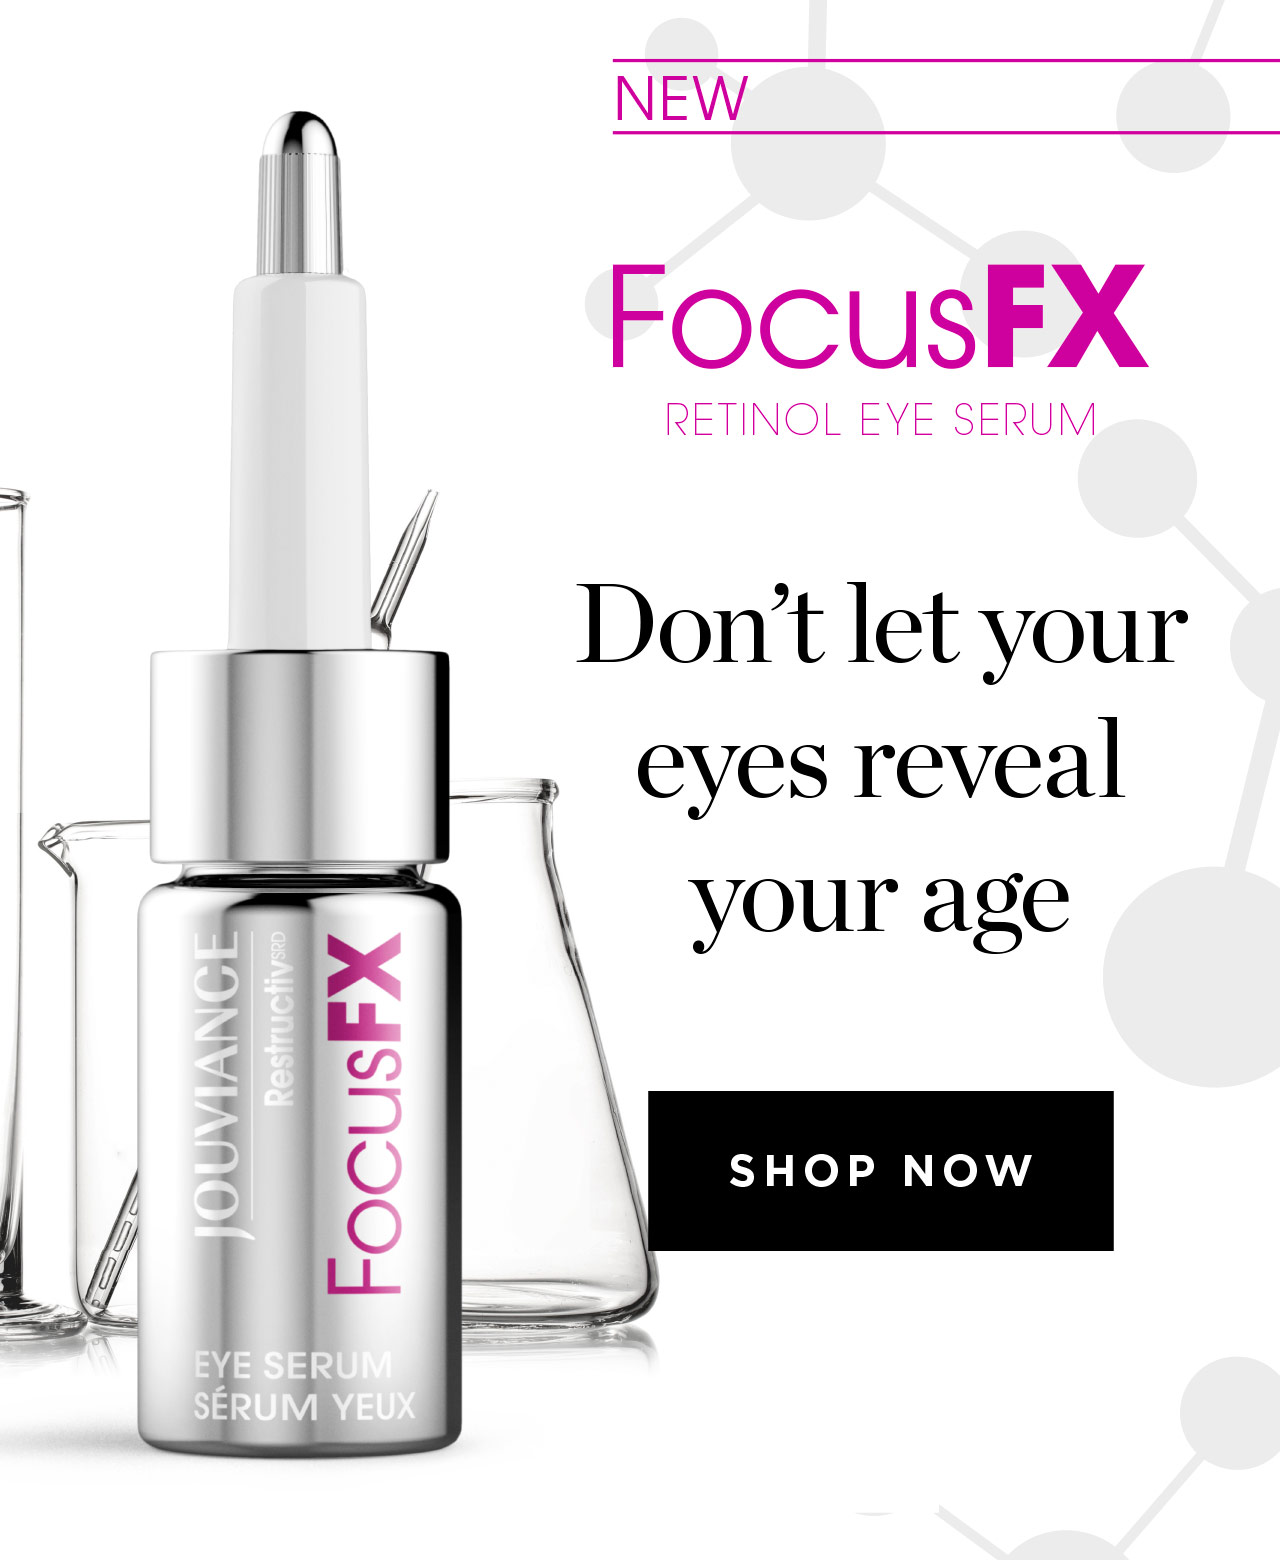 Don't let your eyes reveal your age